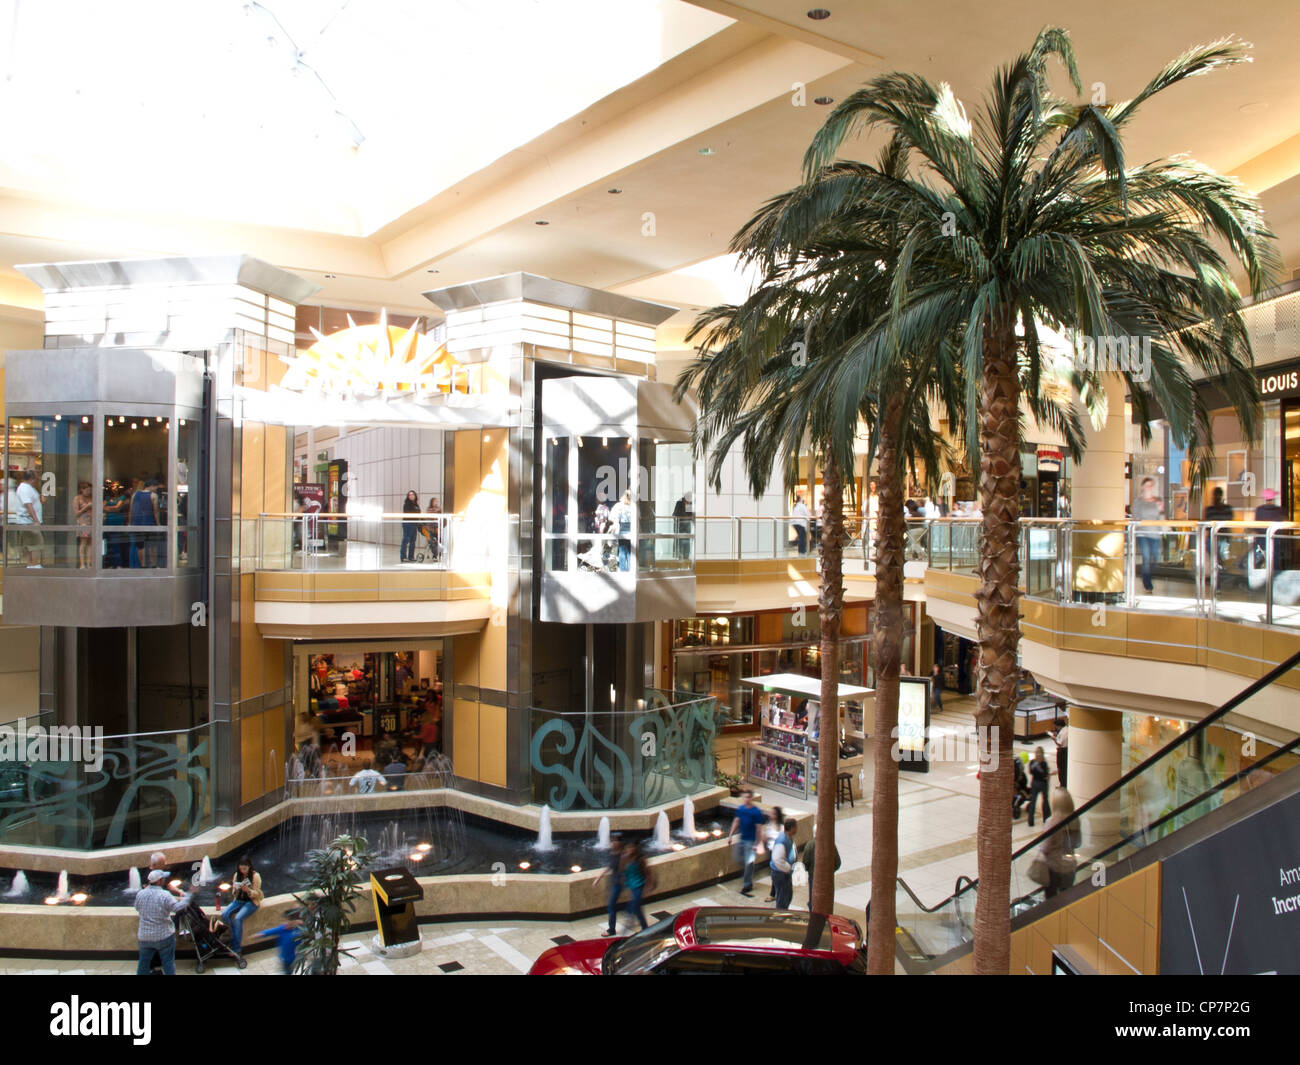 bda4246251cc5 International Mall Tampa Stock Photos   International Mall Tampa ...